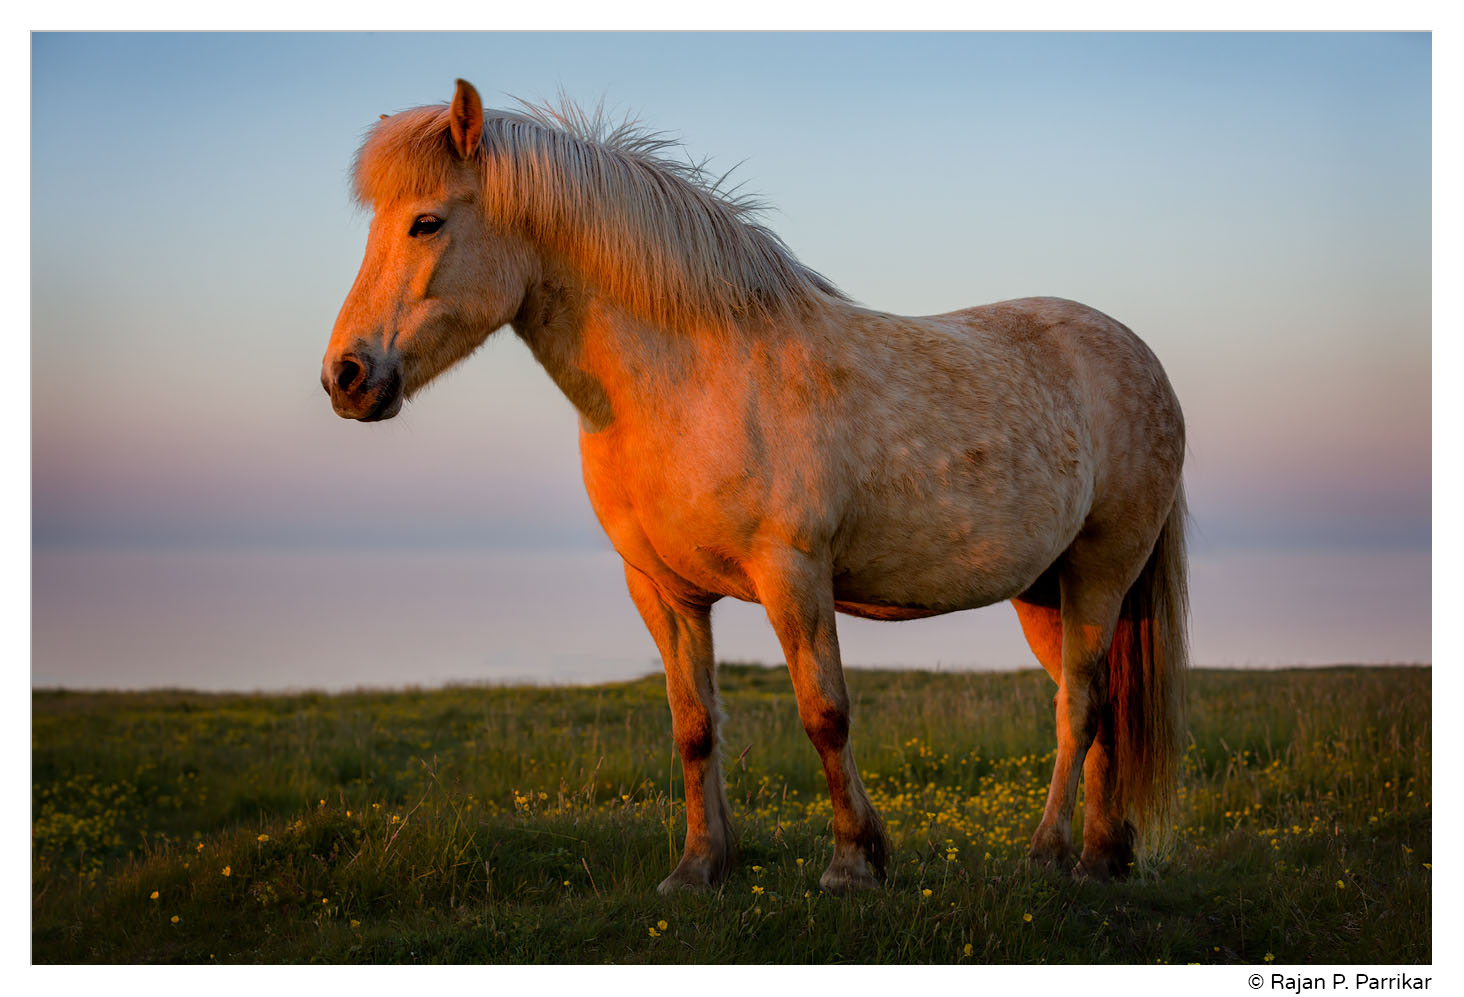 Icelandic horse - last light in Garður, Iceland